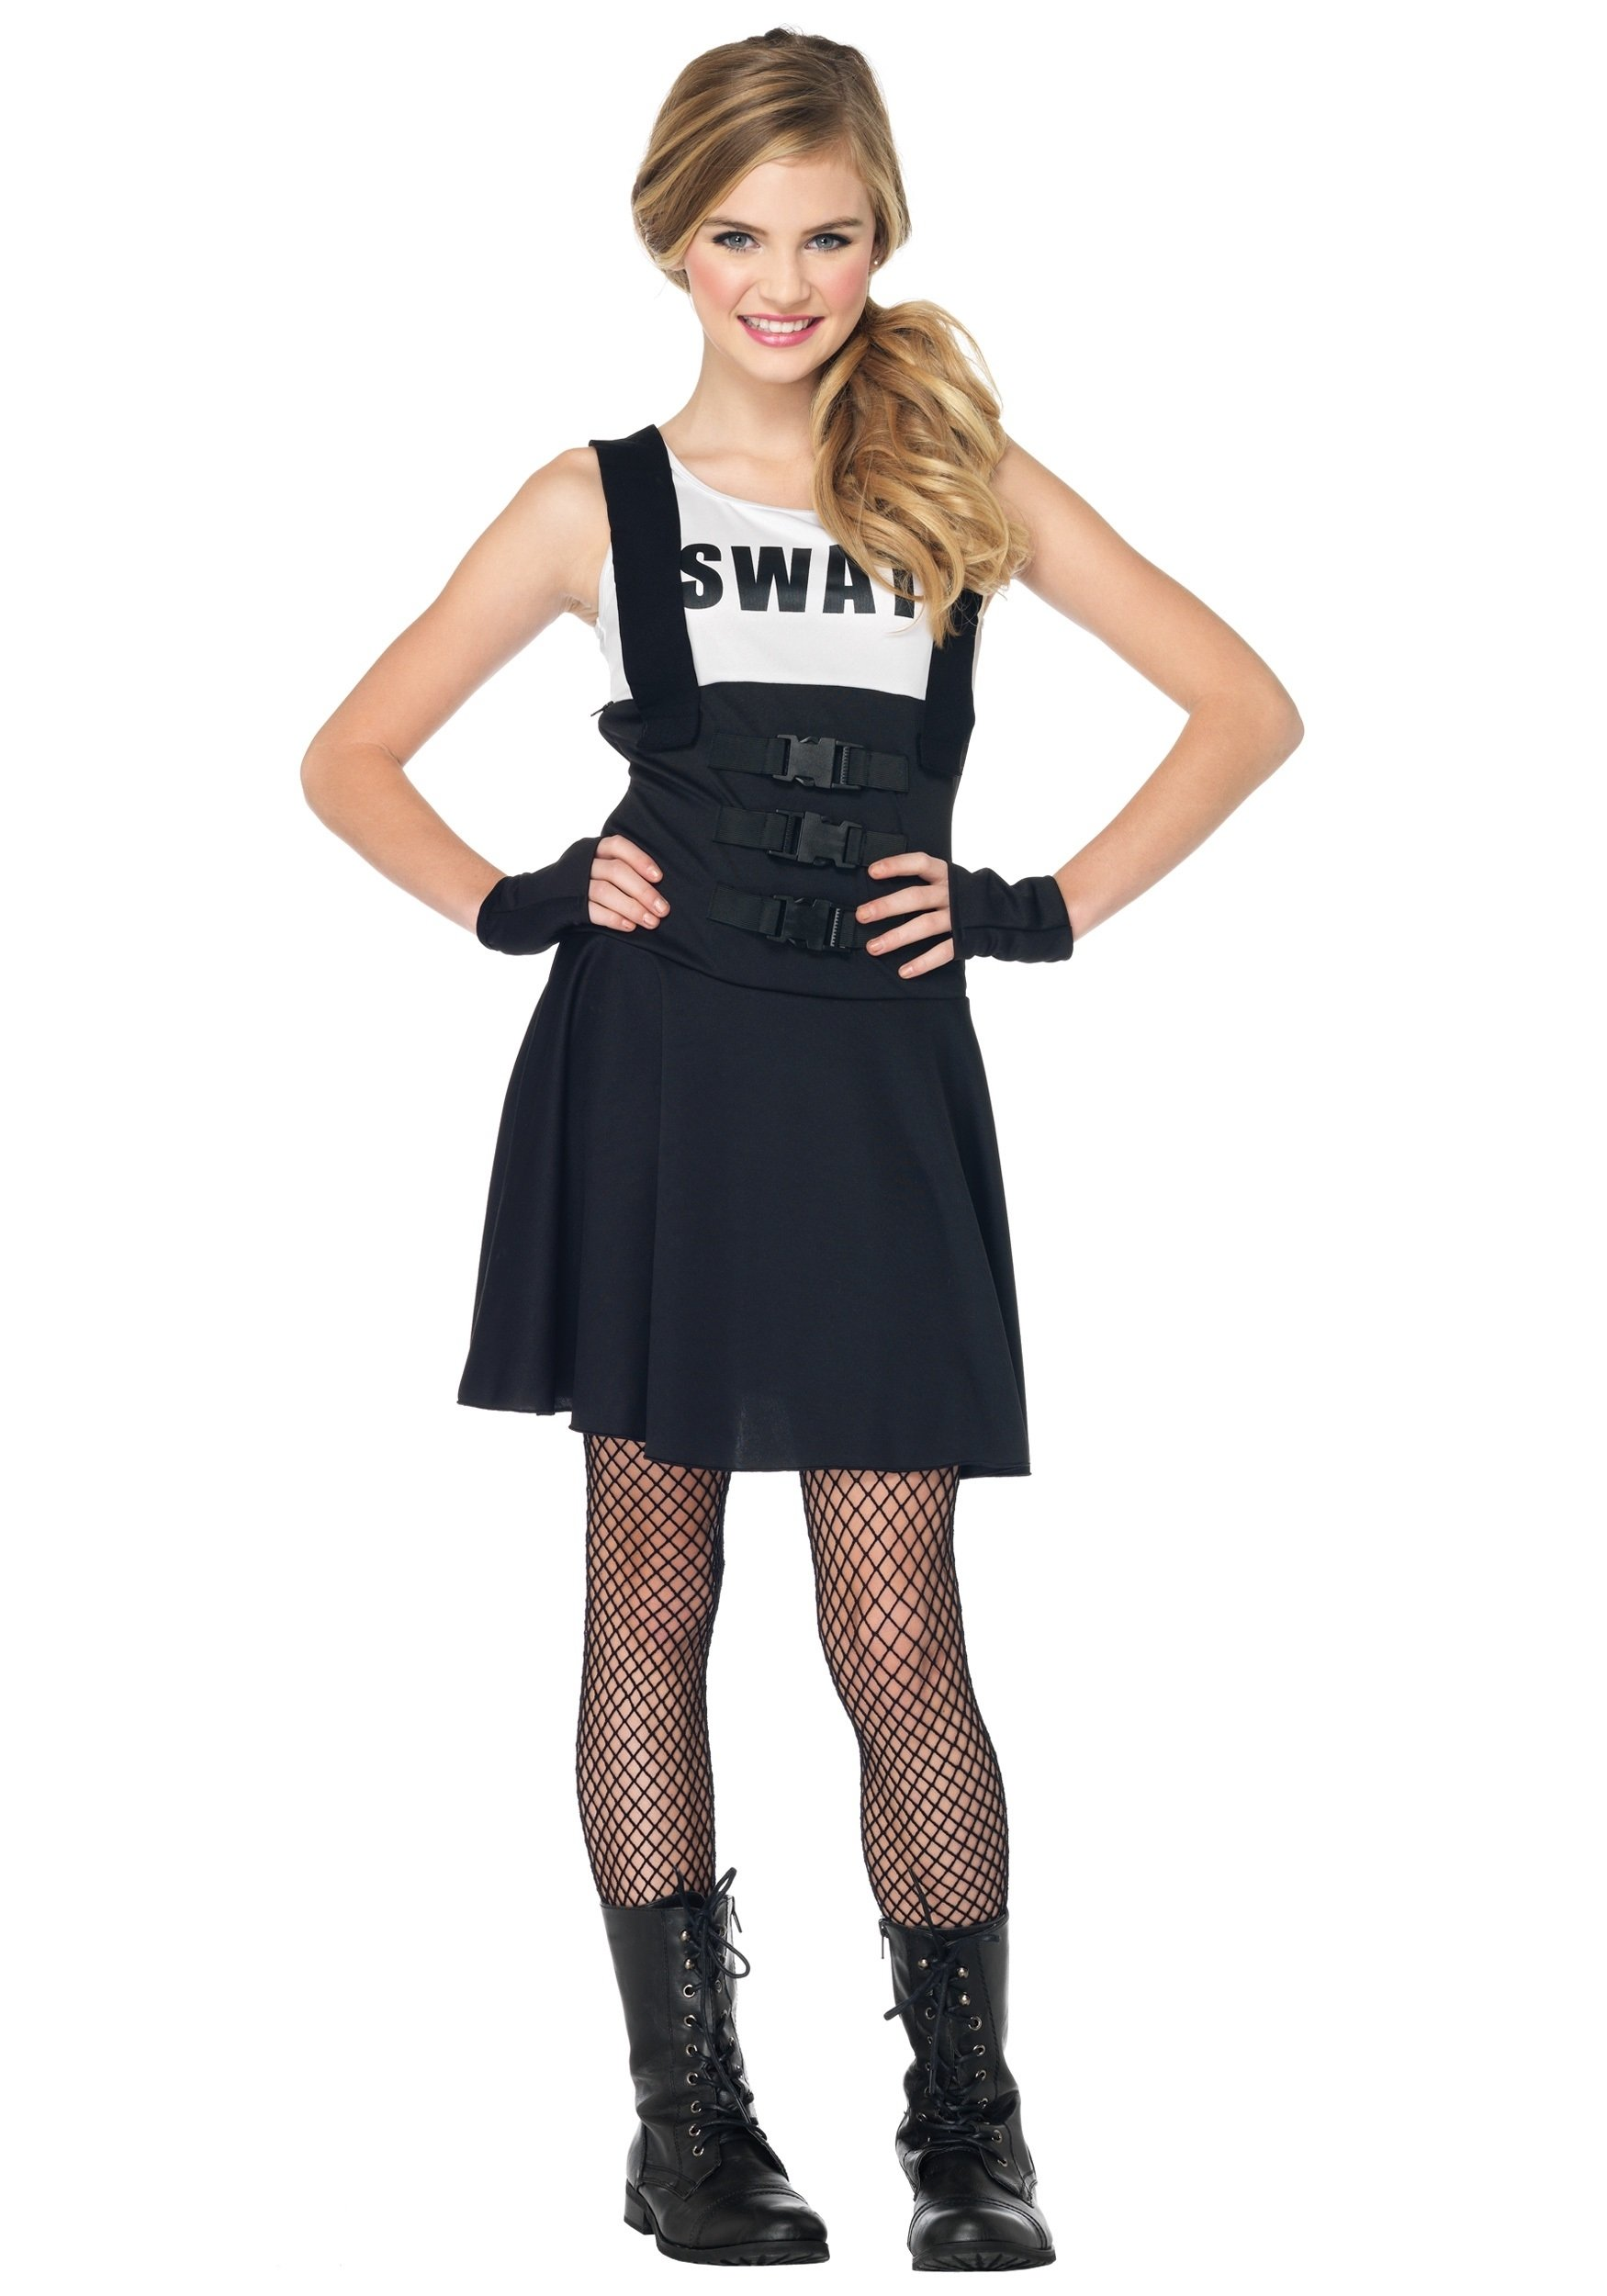 10 Amazing Halloween Costume Ideas Teenage Girls teen swat girl costume halloween costumes 21